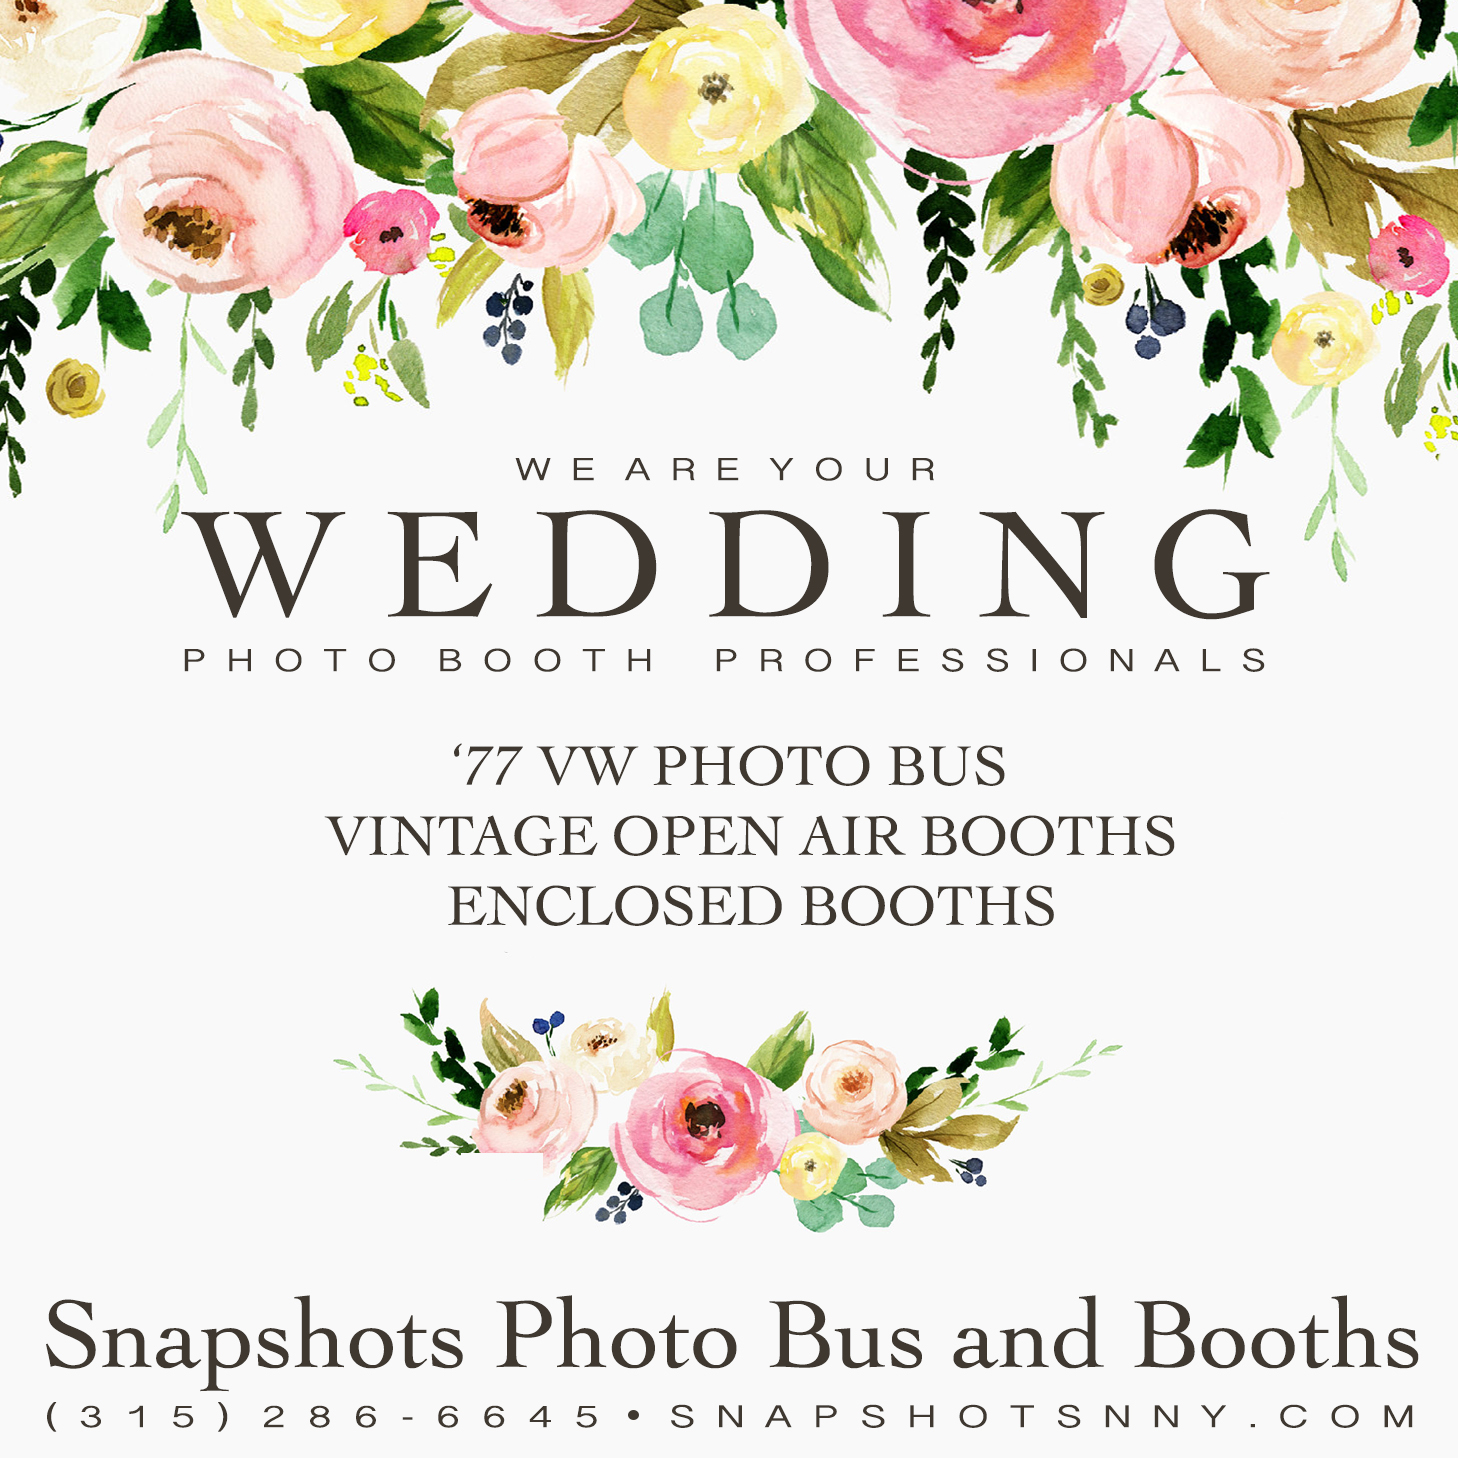 WHY CHOOSE SNAPSHOTS PHOTO BUS AND BOOTHS FOR YOUR WEDDING